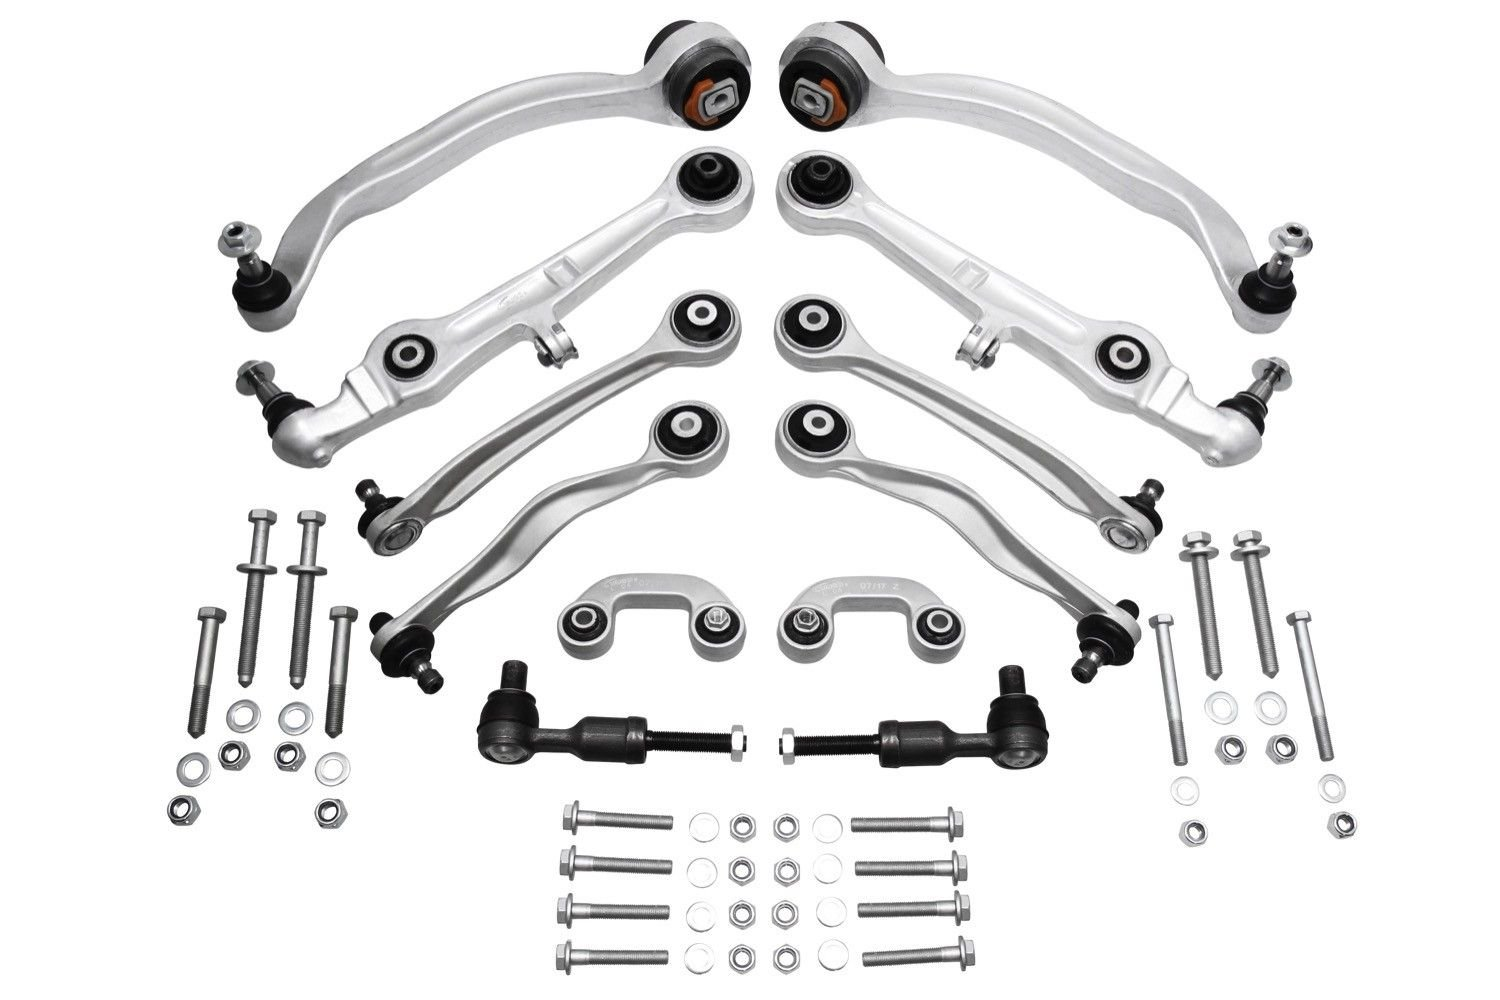 Audi A4 Quattro Suspension Control Arm Repair Kit Replacement (Meyle